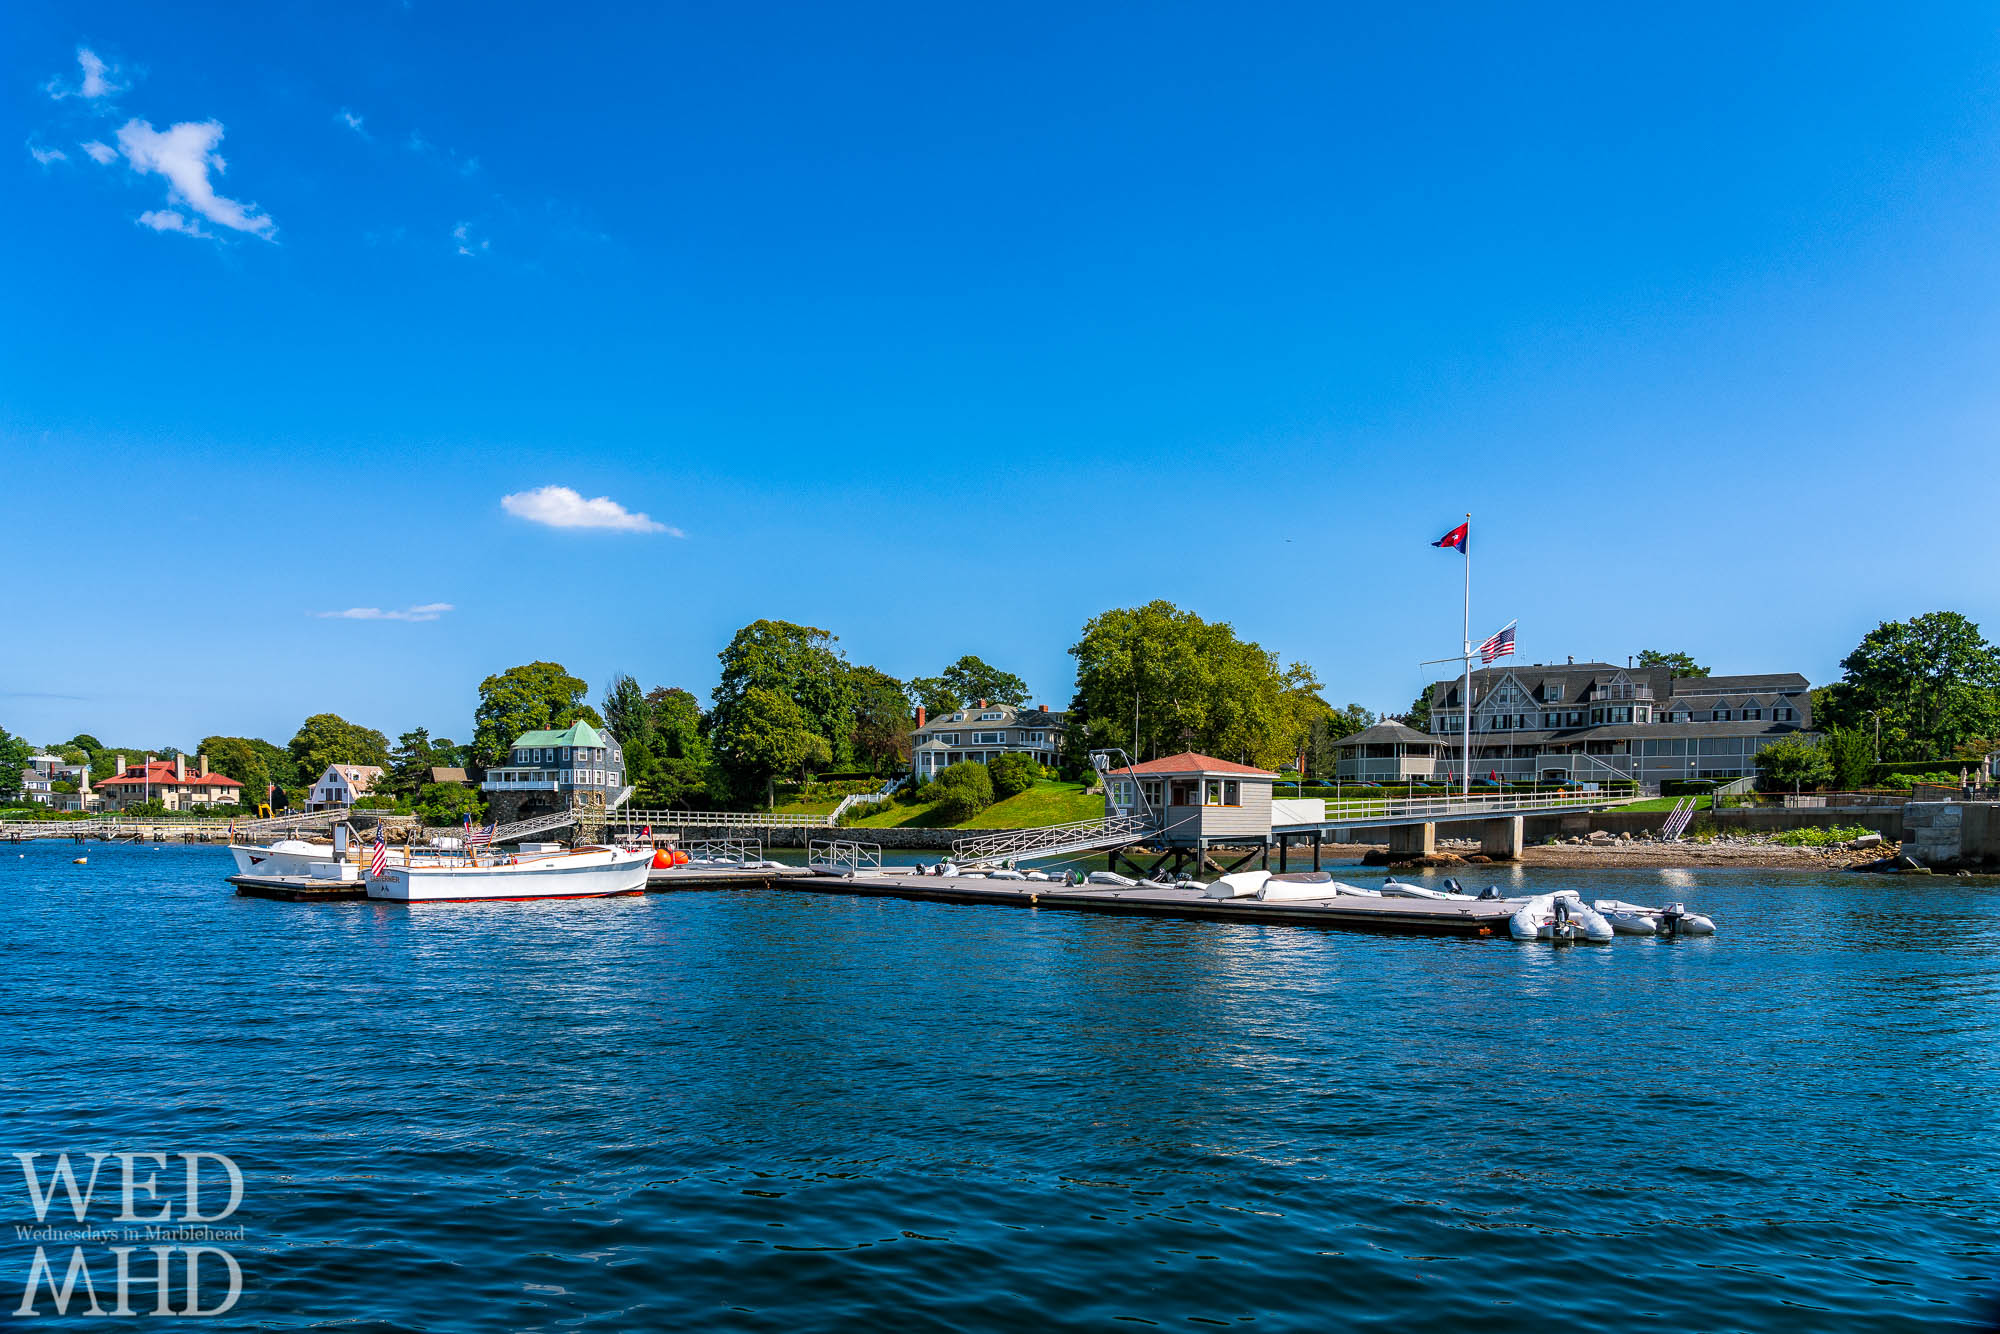 Two small clouds fill an otherwise deep blue sky on this bluebird day looking at the whole of the Eastern Yacht Club